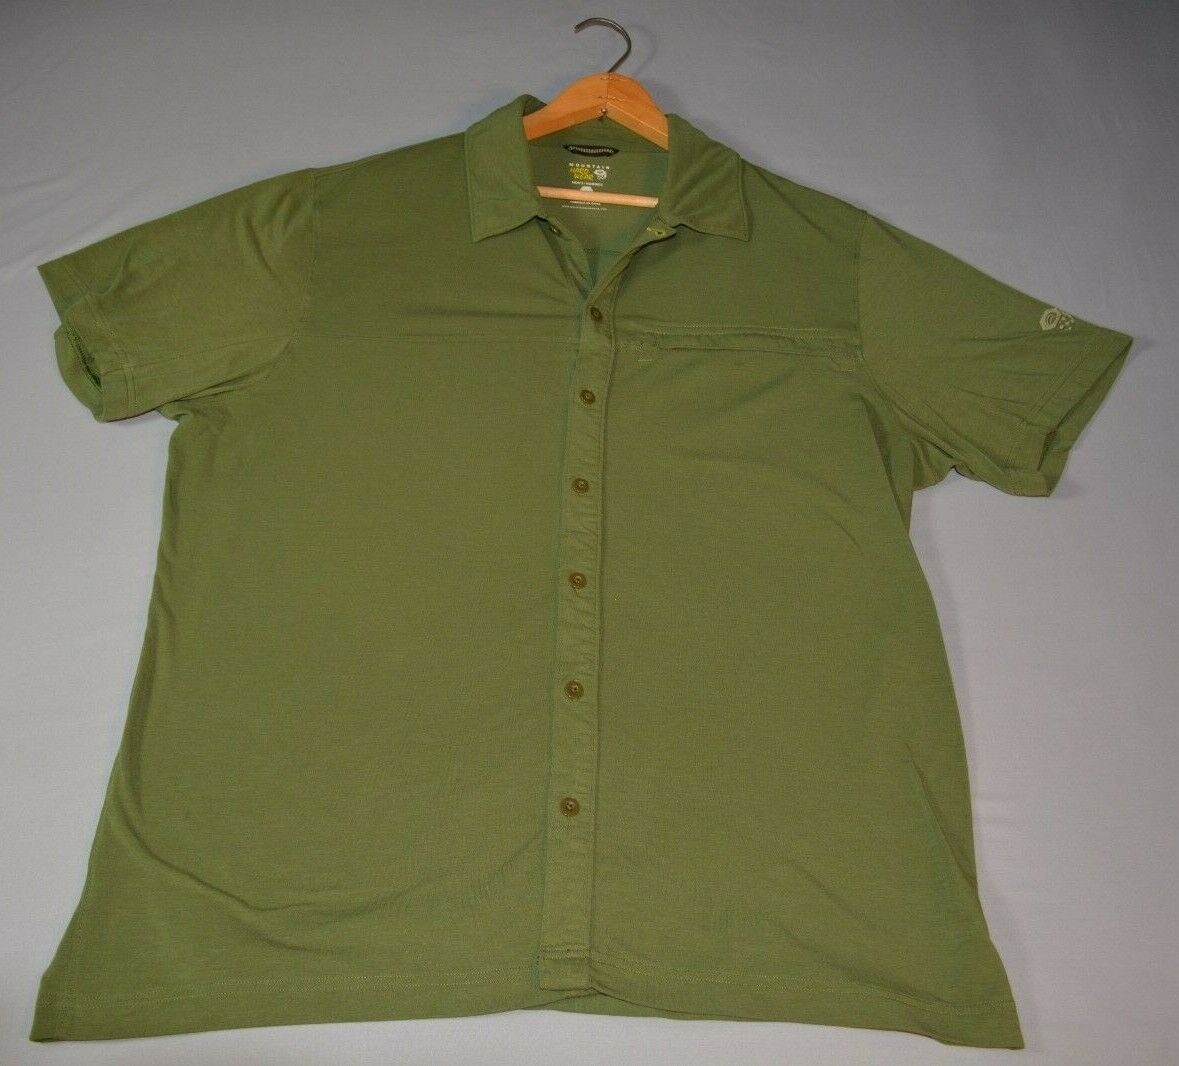 Mountain HardWear Green Short Sleeve Button Front Shirt - Size L